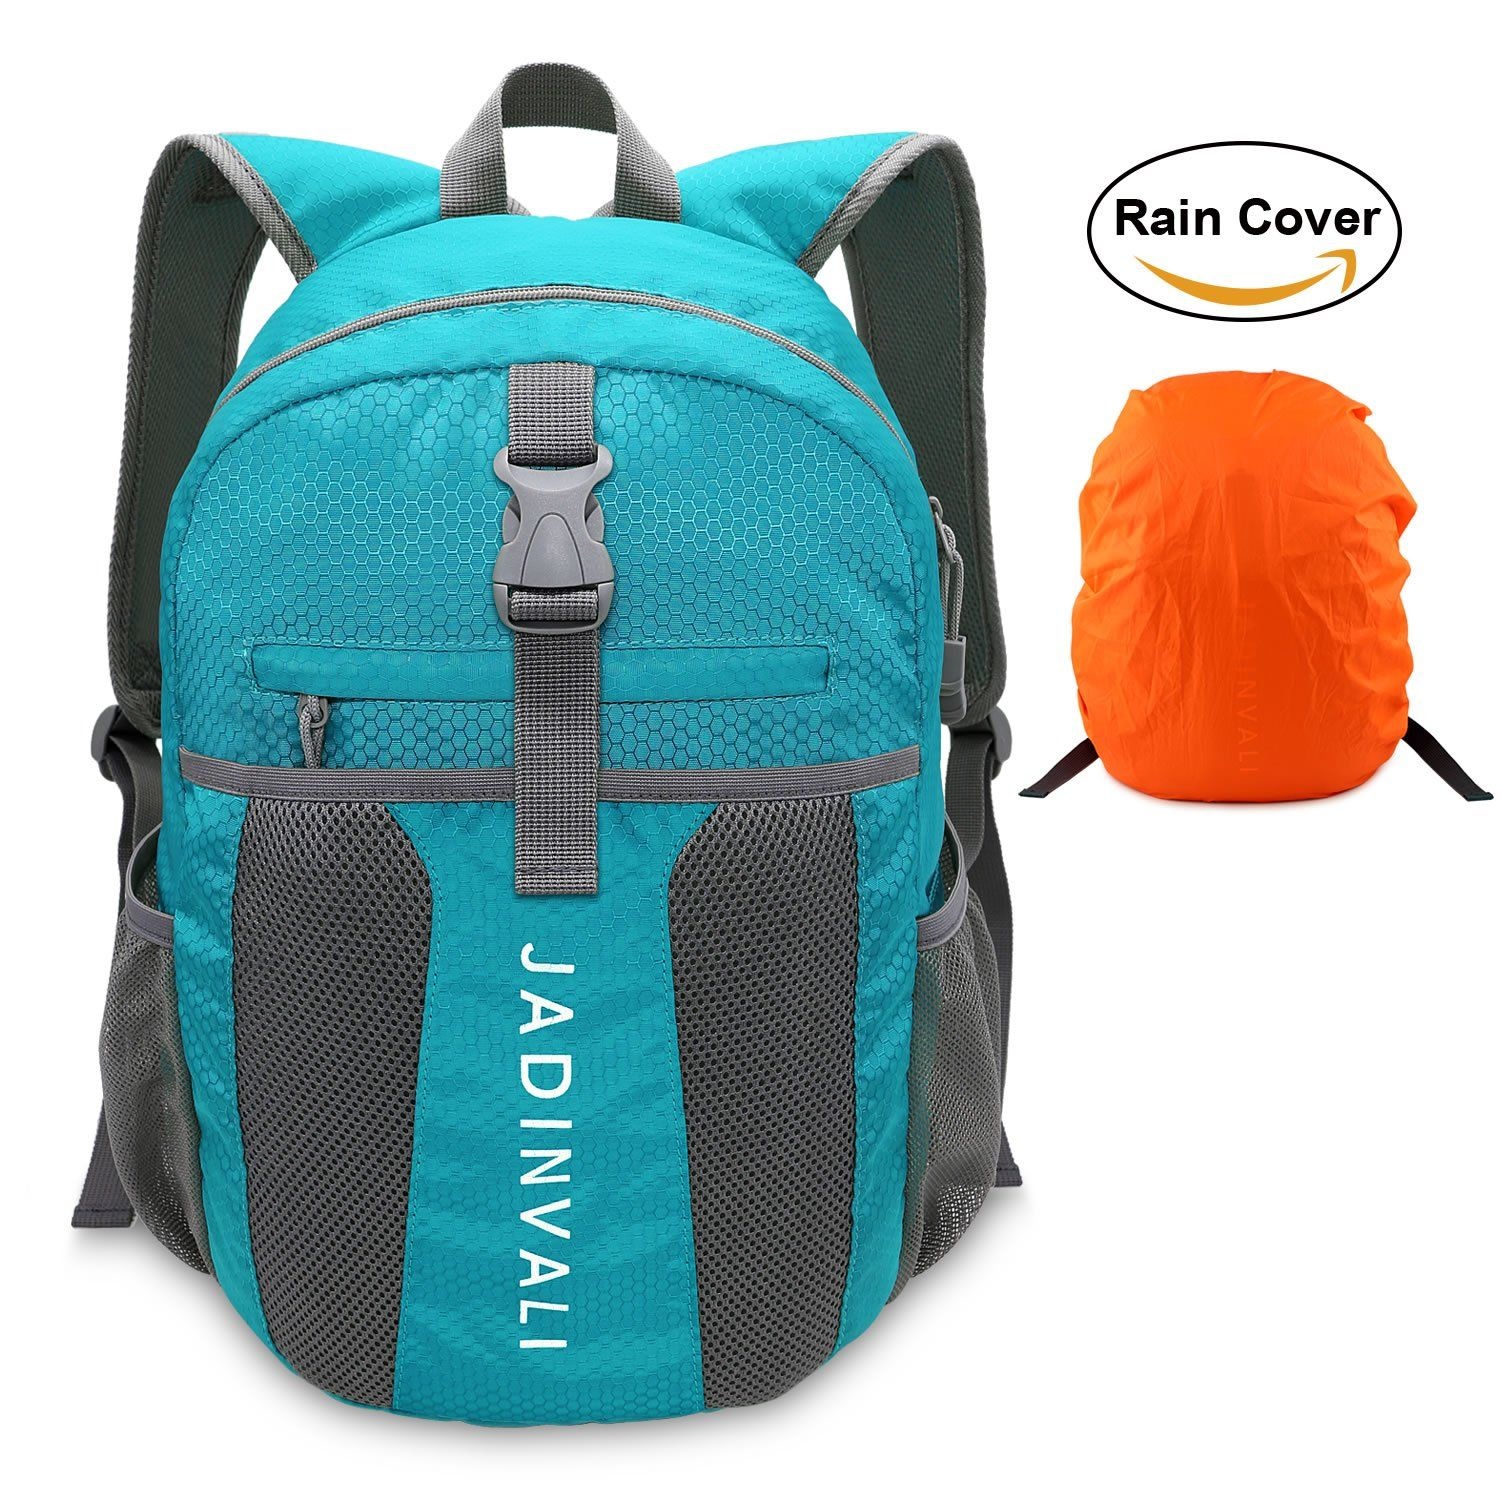 Foldable Collapsible Lightweight Backpack for Travel Traveling Backpack